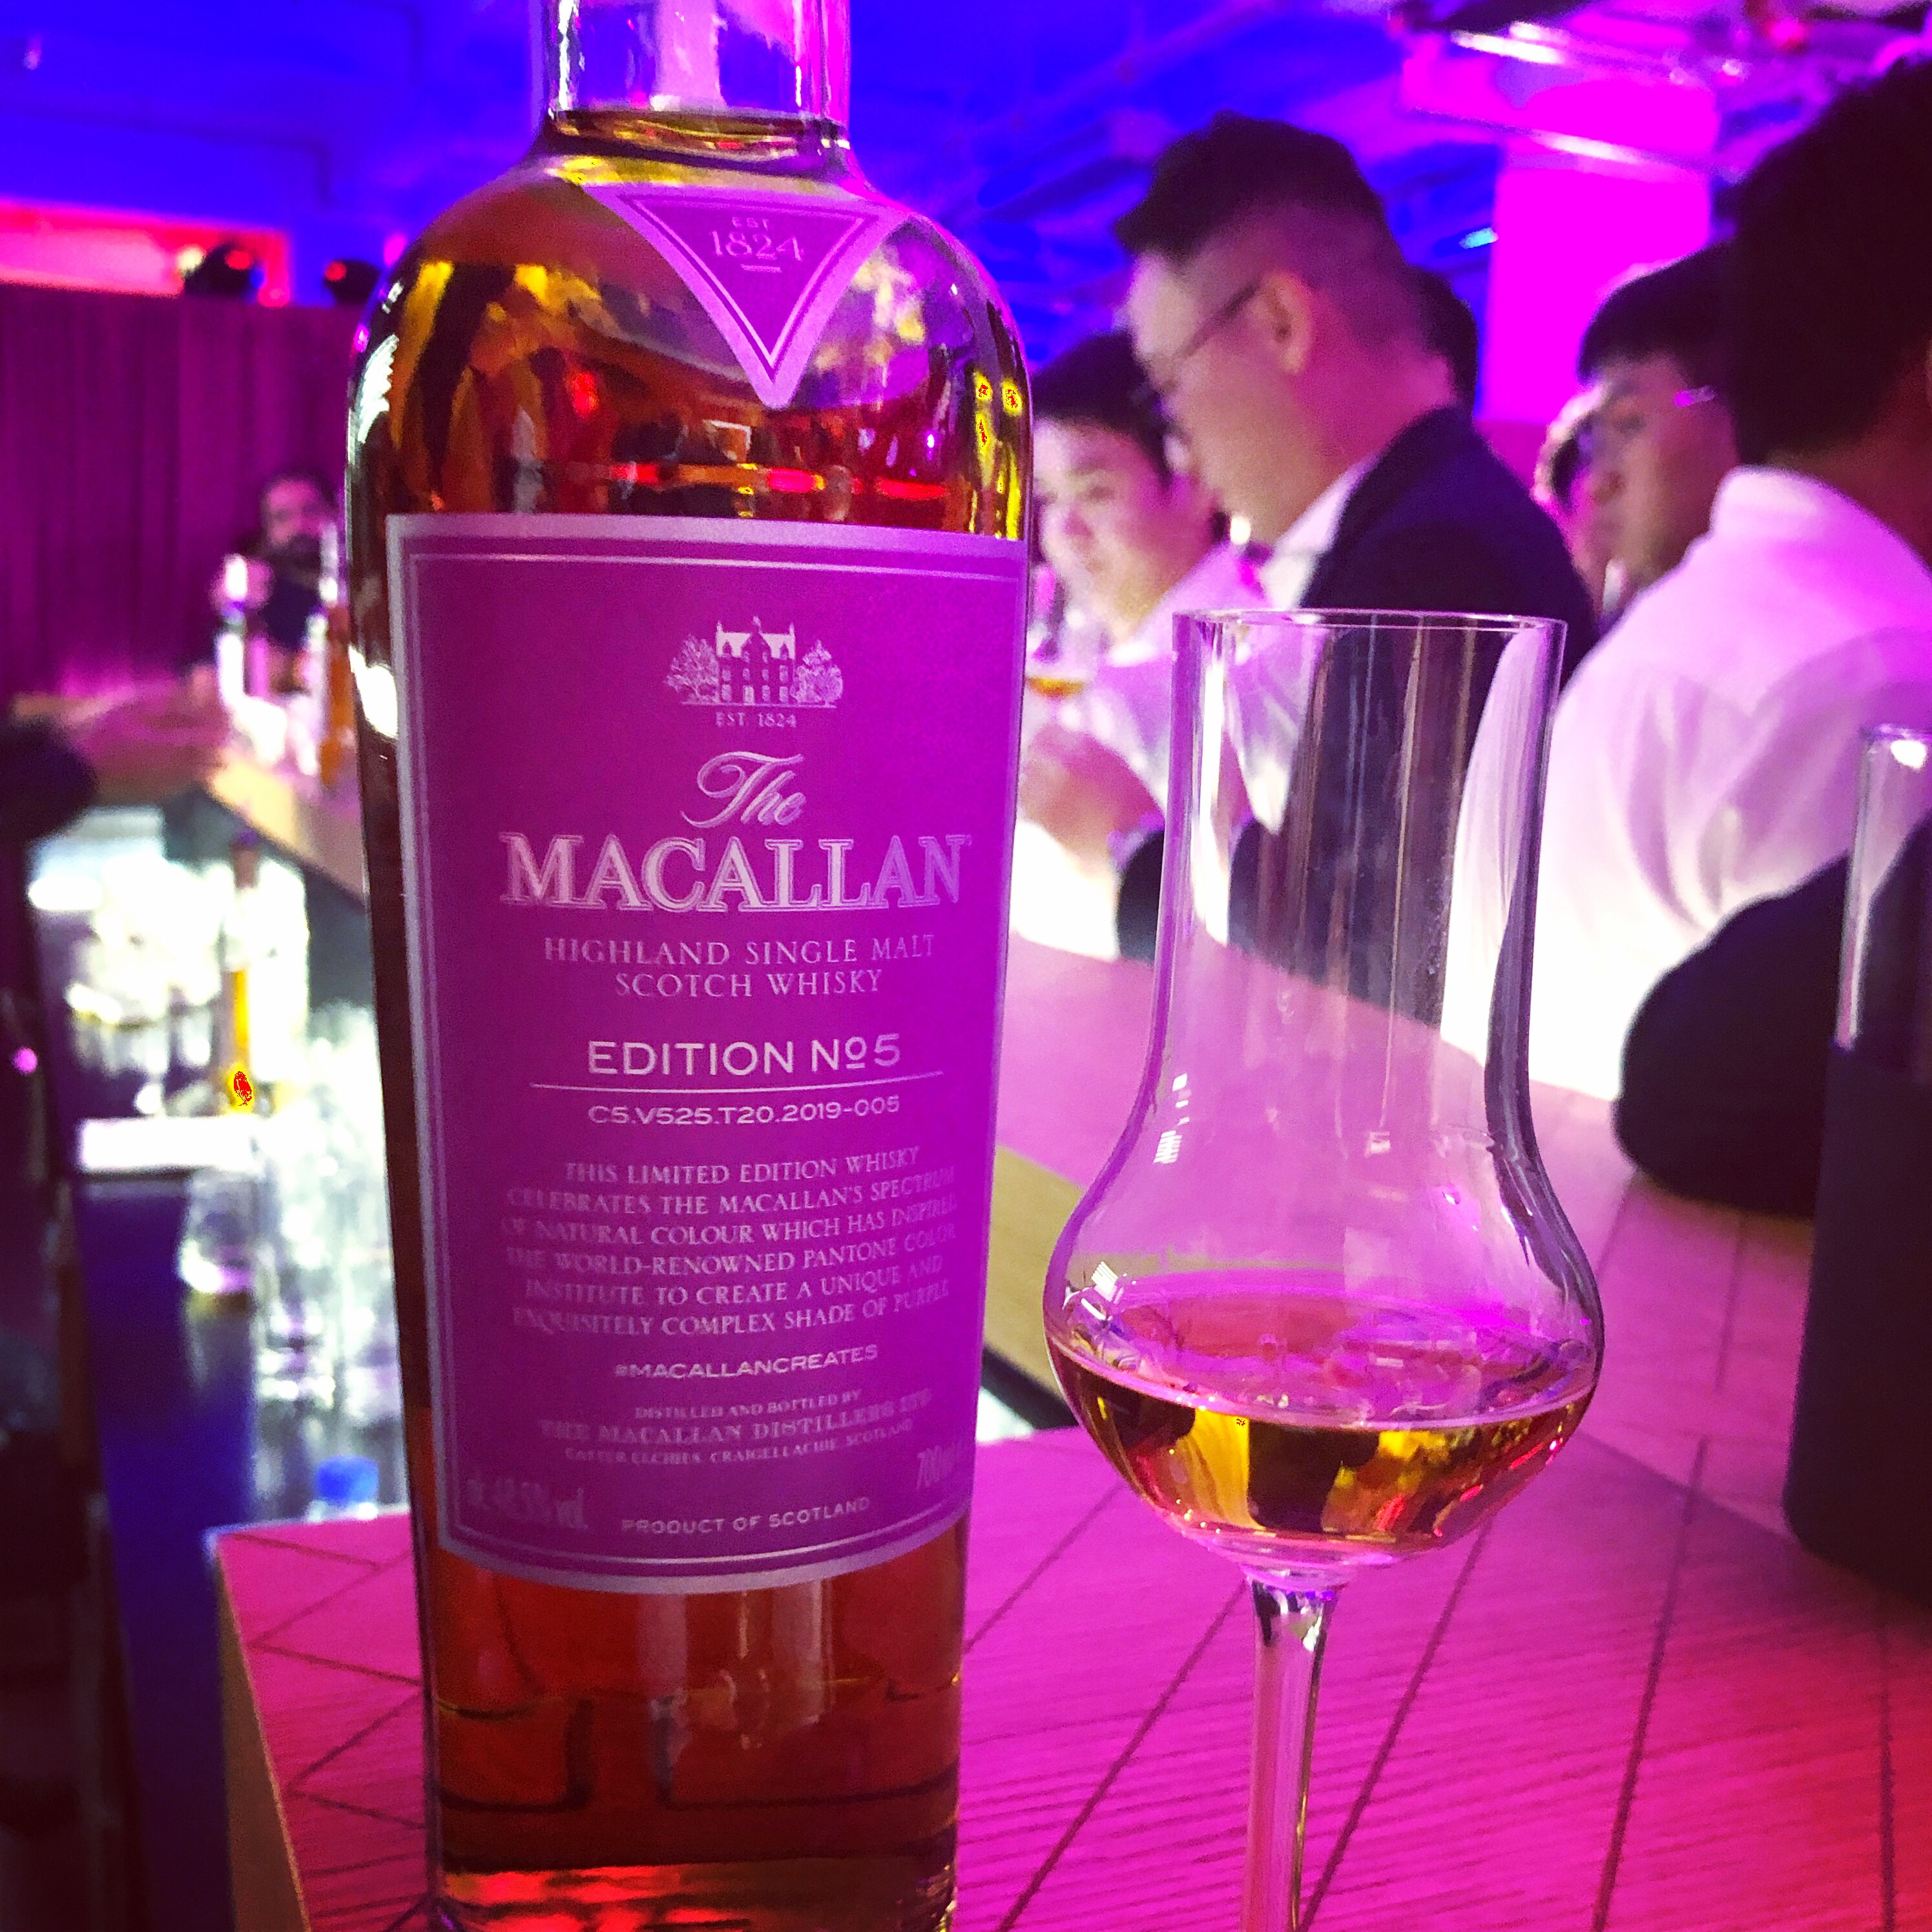 Dram Review: The Macallan Edition No. 5